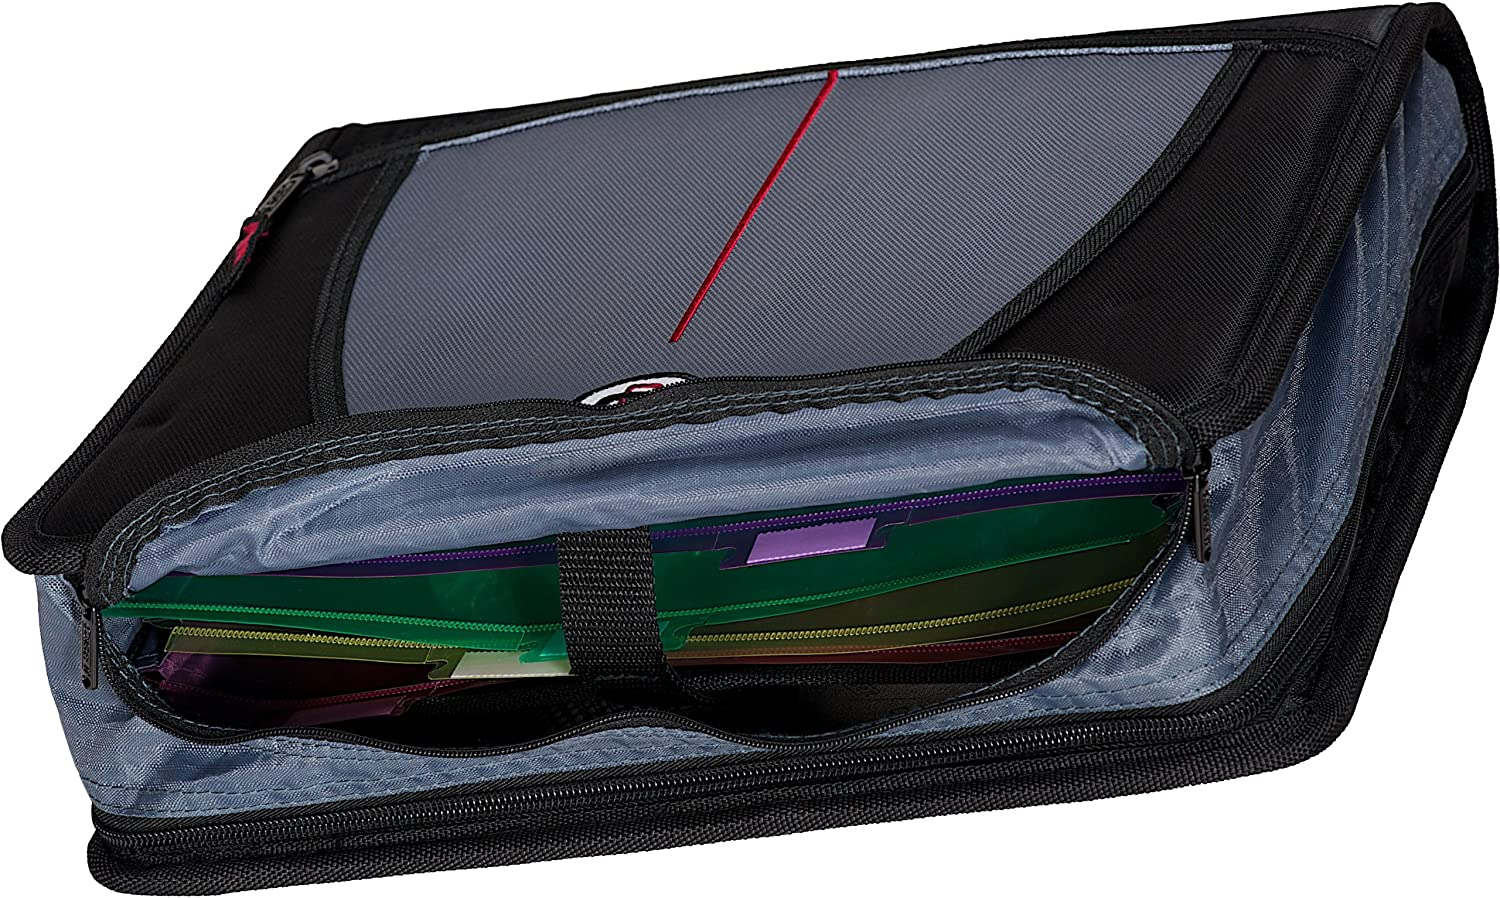 """Zipper Binder 3 Ring 2 Inch with Built in Handle and Shoulder Strap 13x2.8x12 /"""""""